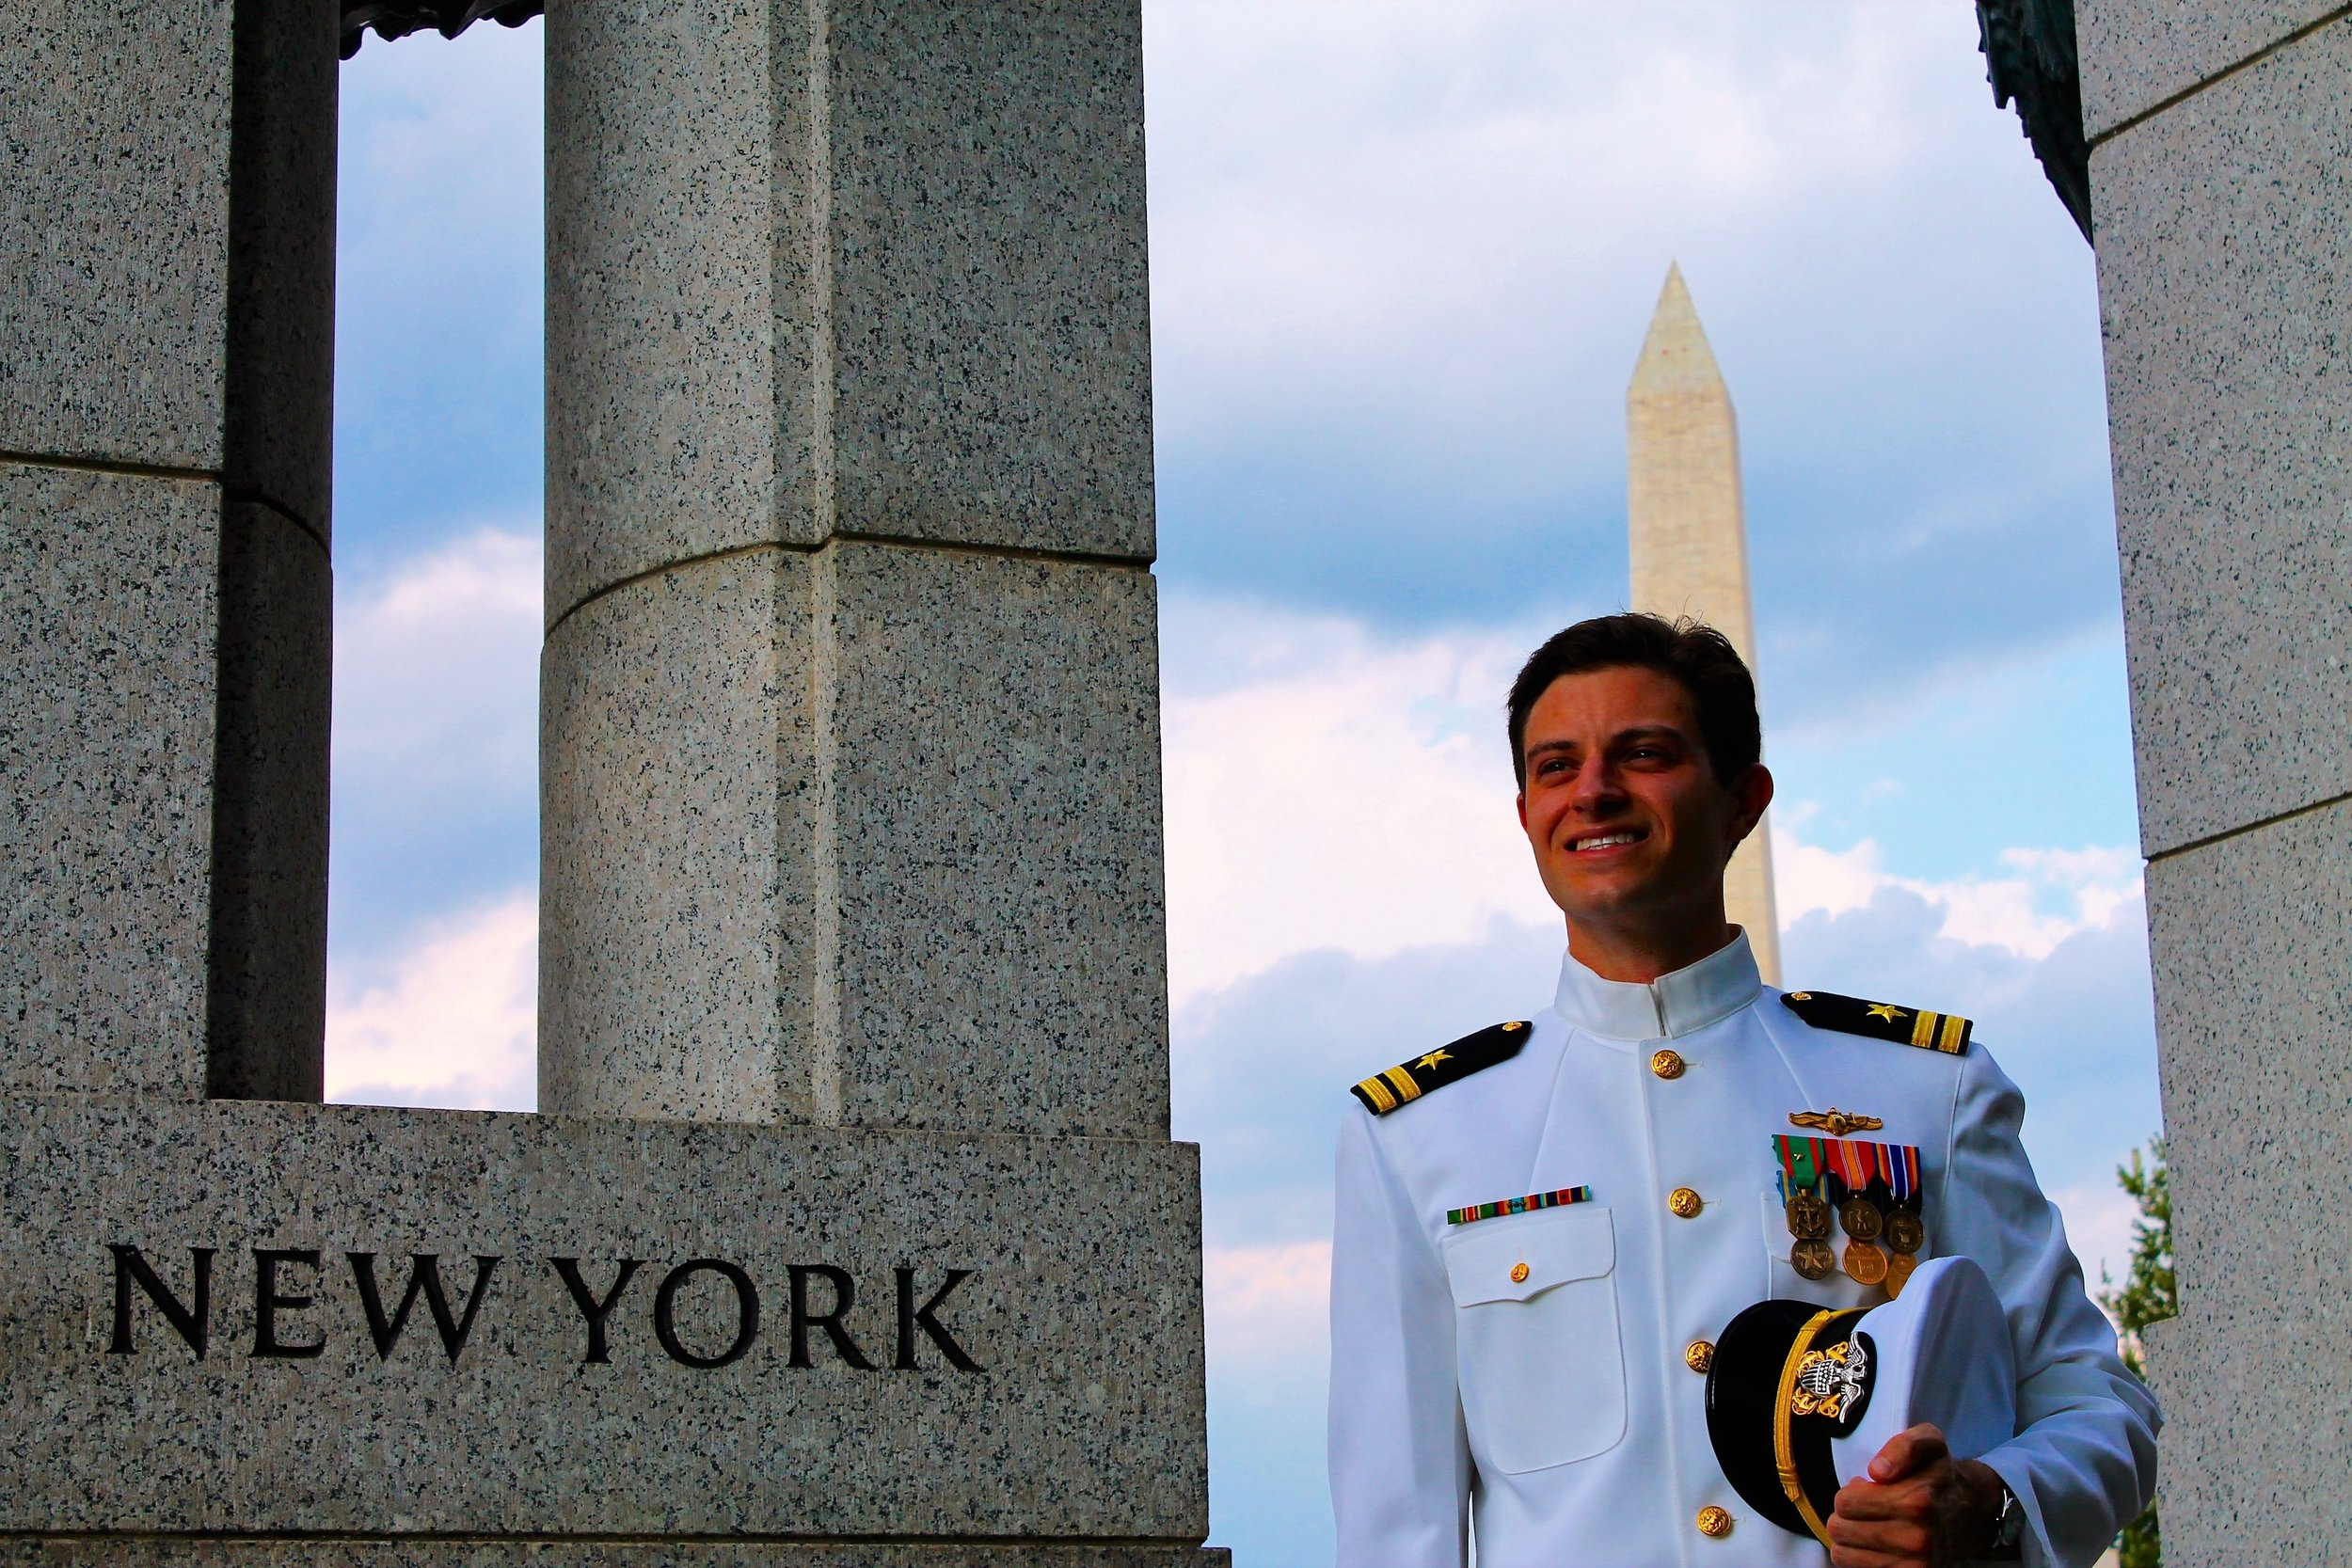 Nathan in Navy Uniform between deployments in Washington D.C.